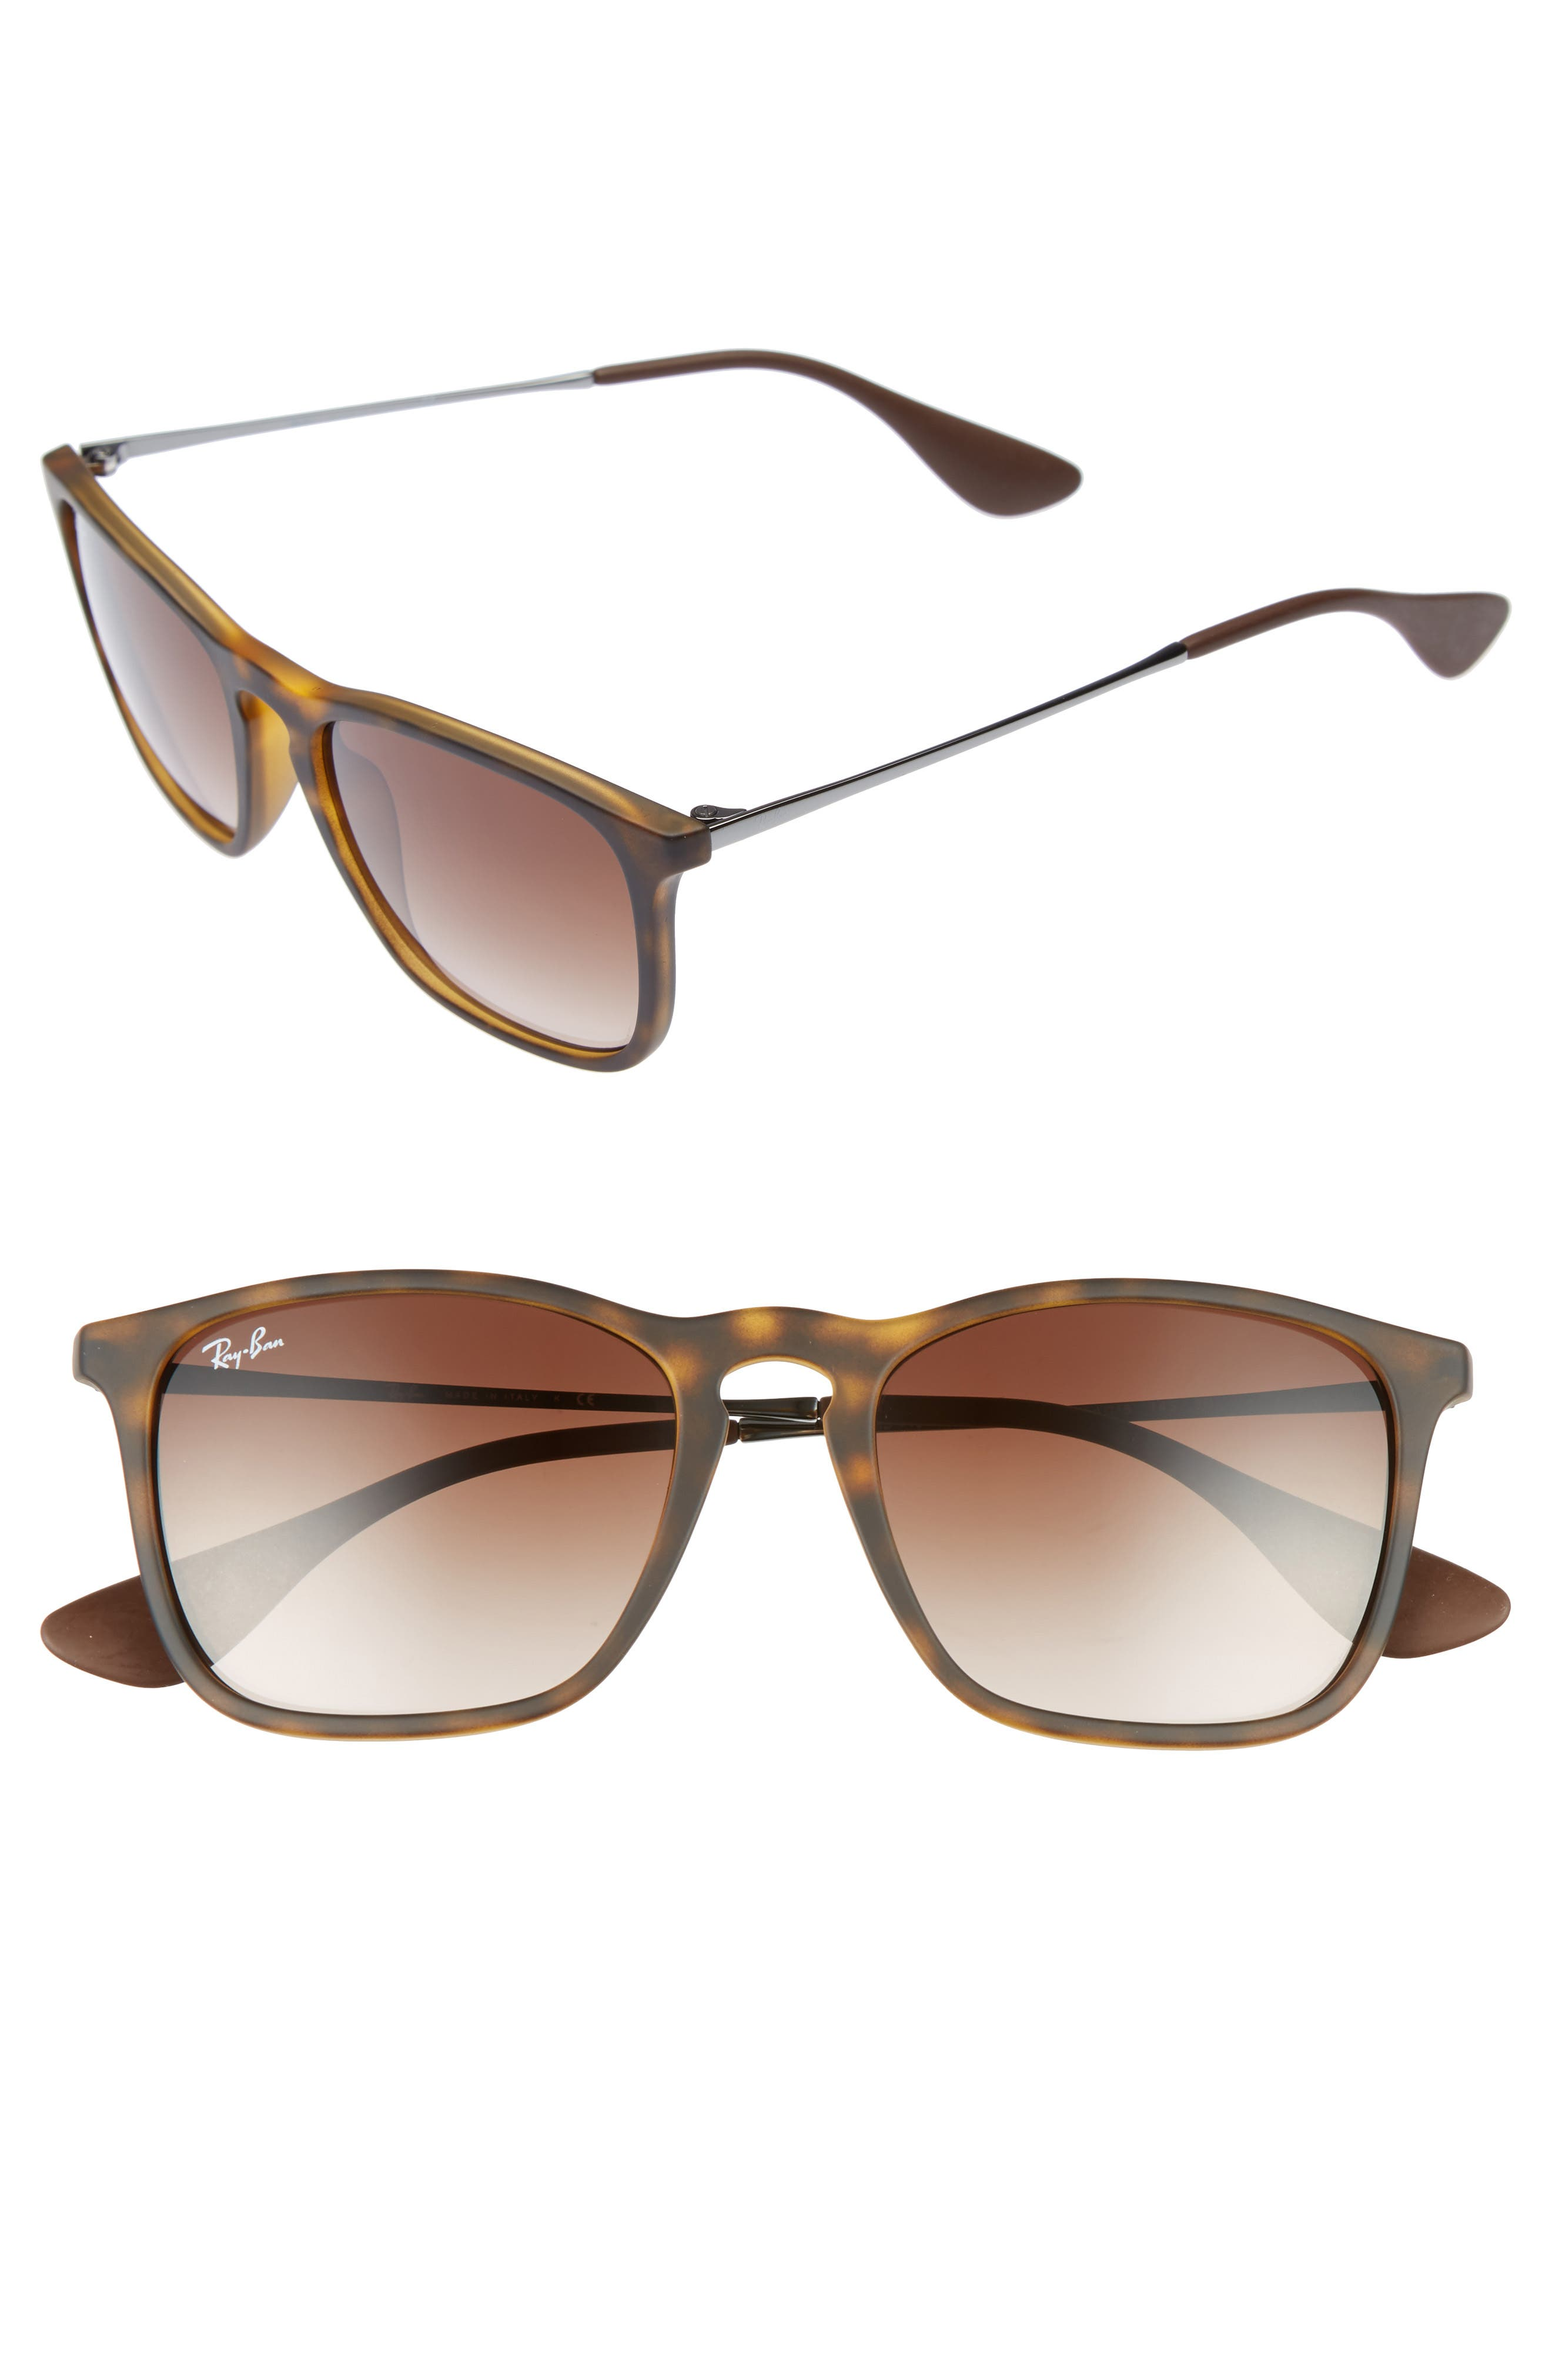 Youngster 54mm Square Keyhole Sunglasses,                         Main,                         color, BROWN